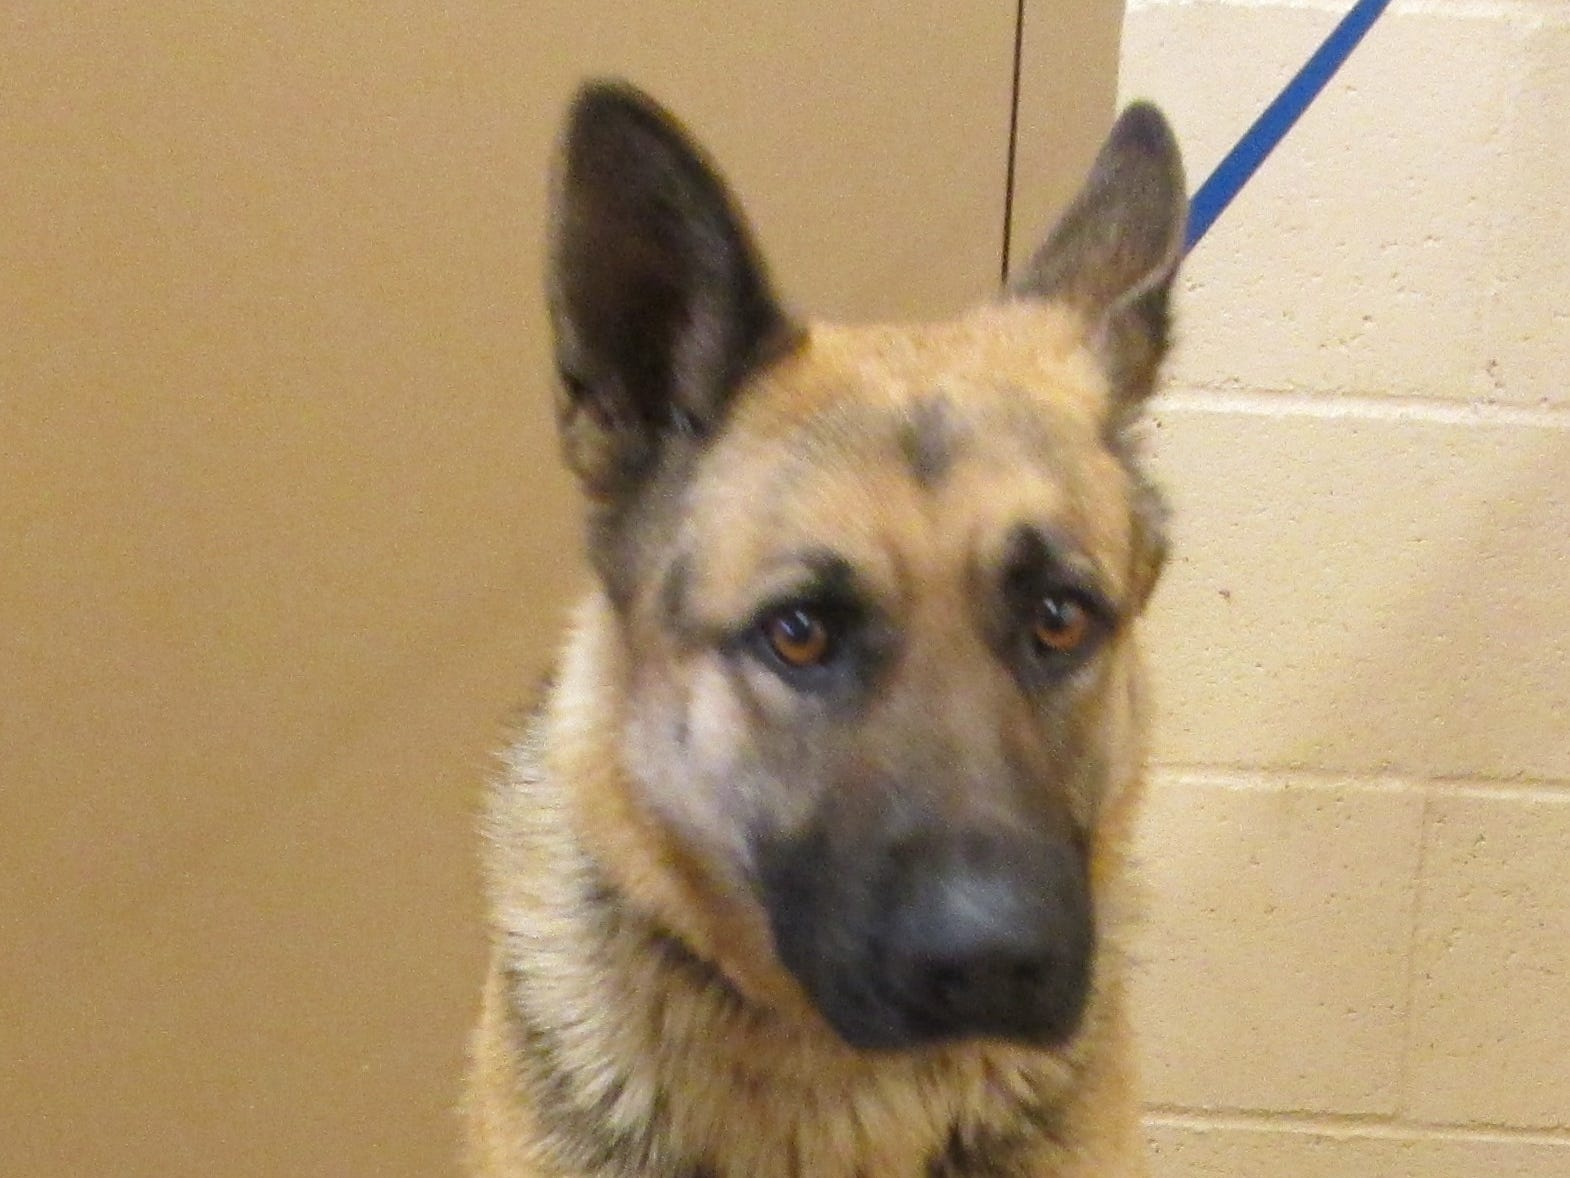 Betsy is a 3-year-old female black and tan German shepherd. She is just coming into her own, so Betsy may need a confidence boost now and then with training, guidance and love. A stable environment is what she needs most. Contact Marion County Dog Services at 503-588-5366 or go to www.MCDogs.net.